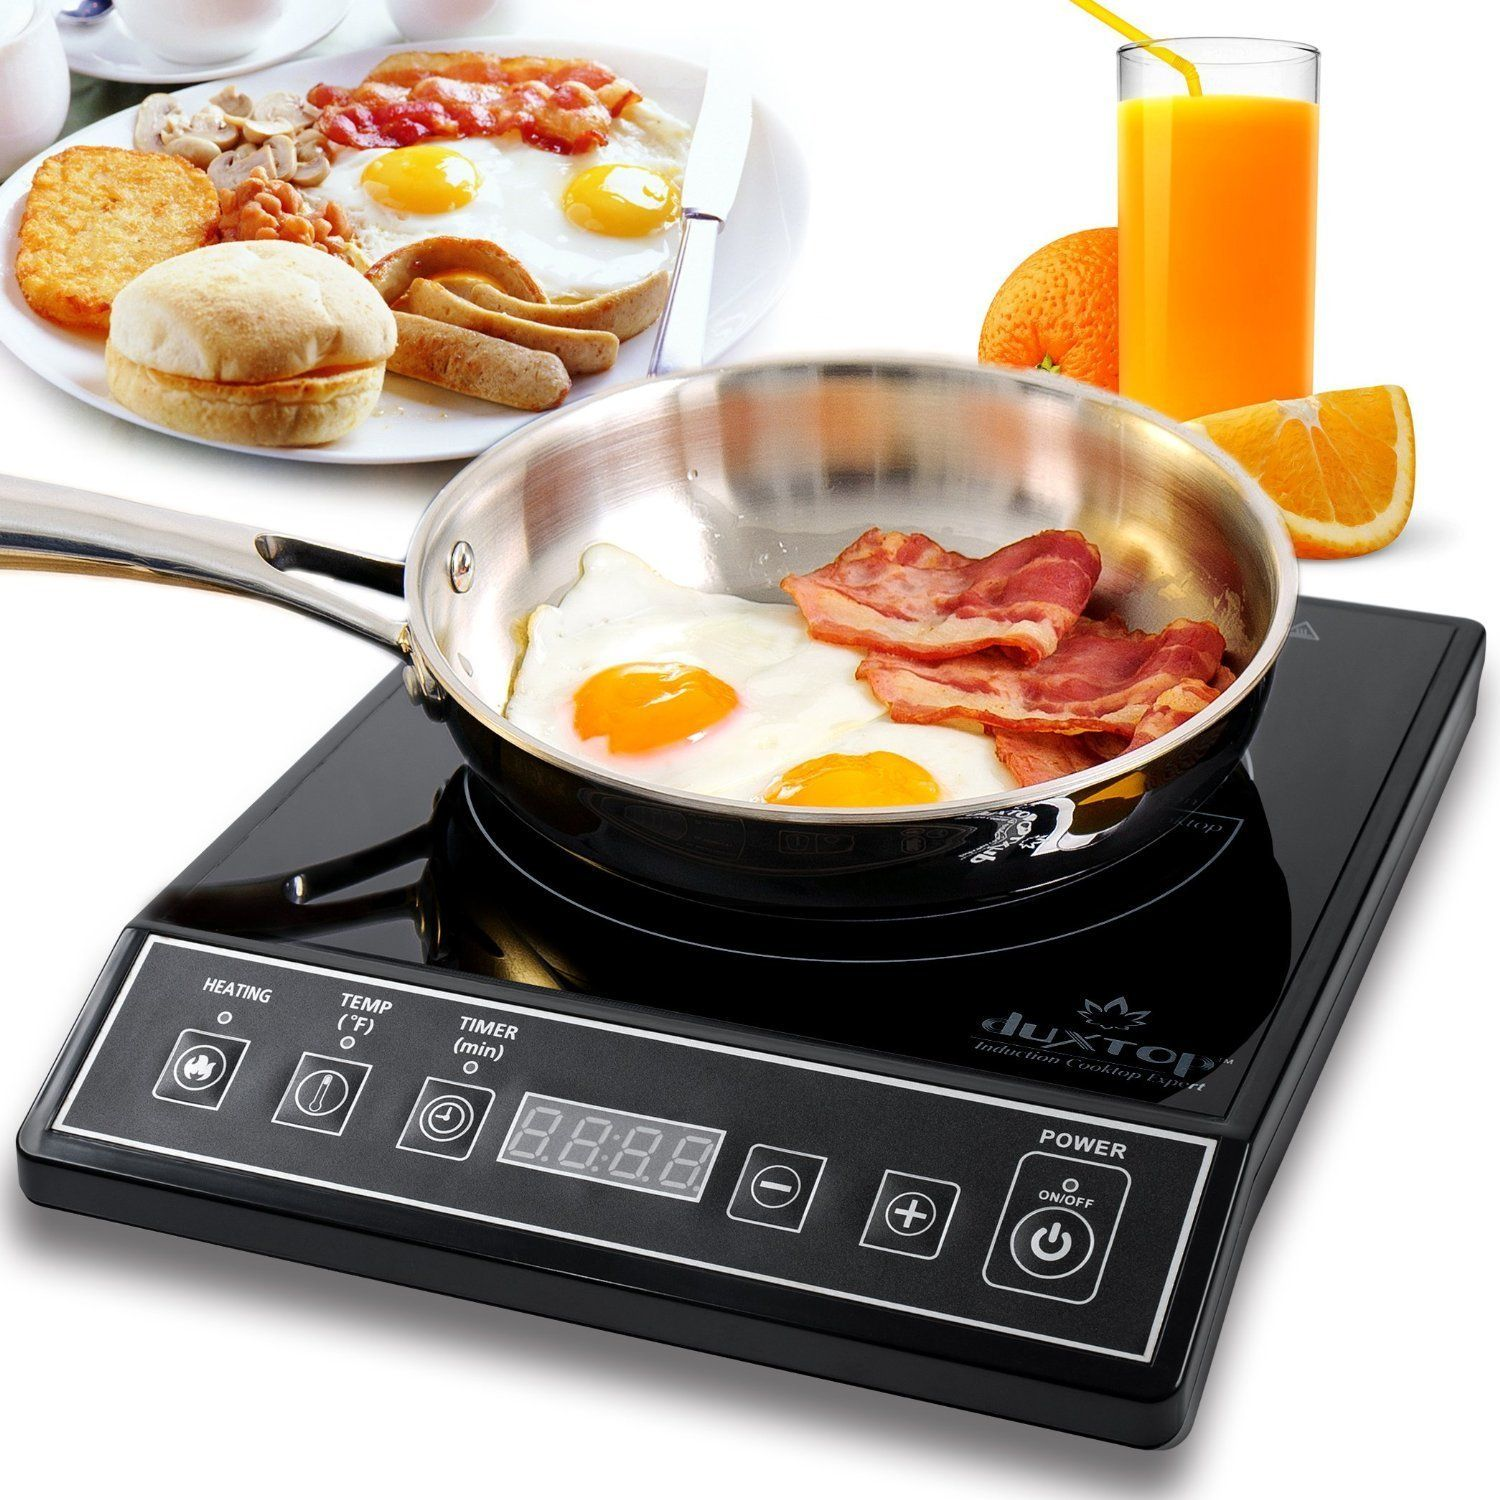 the portable induction cooktop is the best invention of science